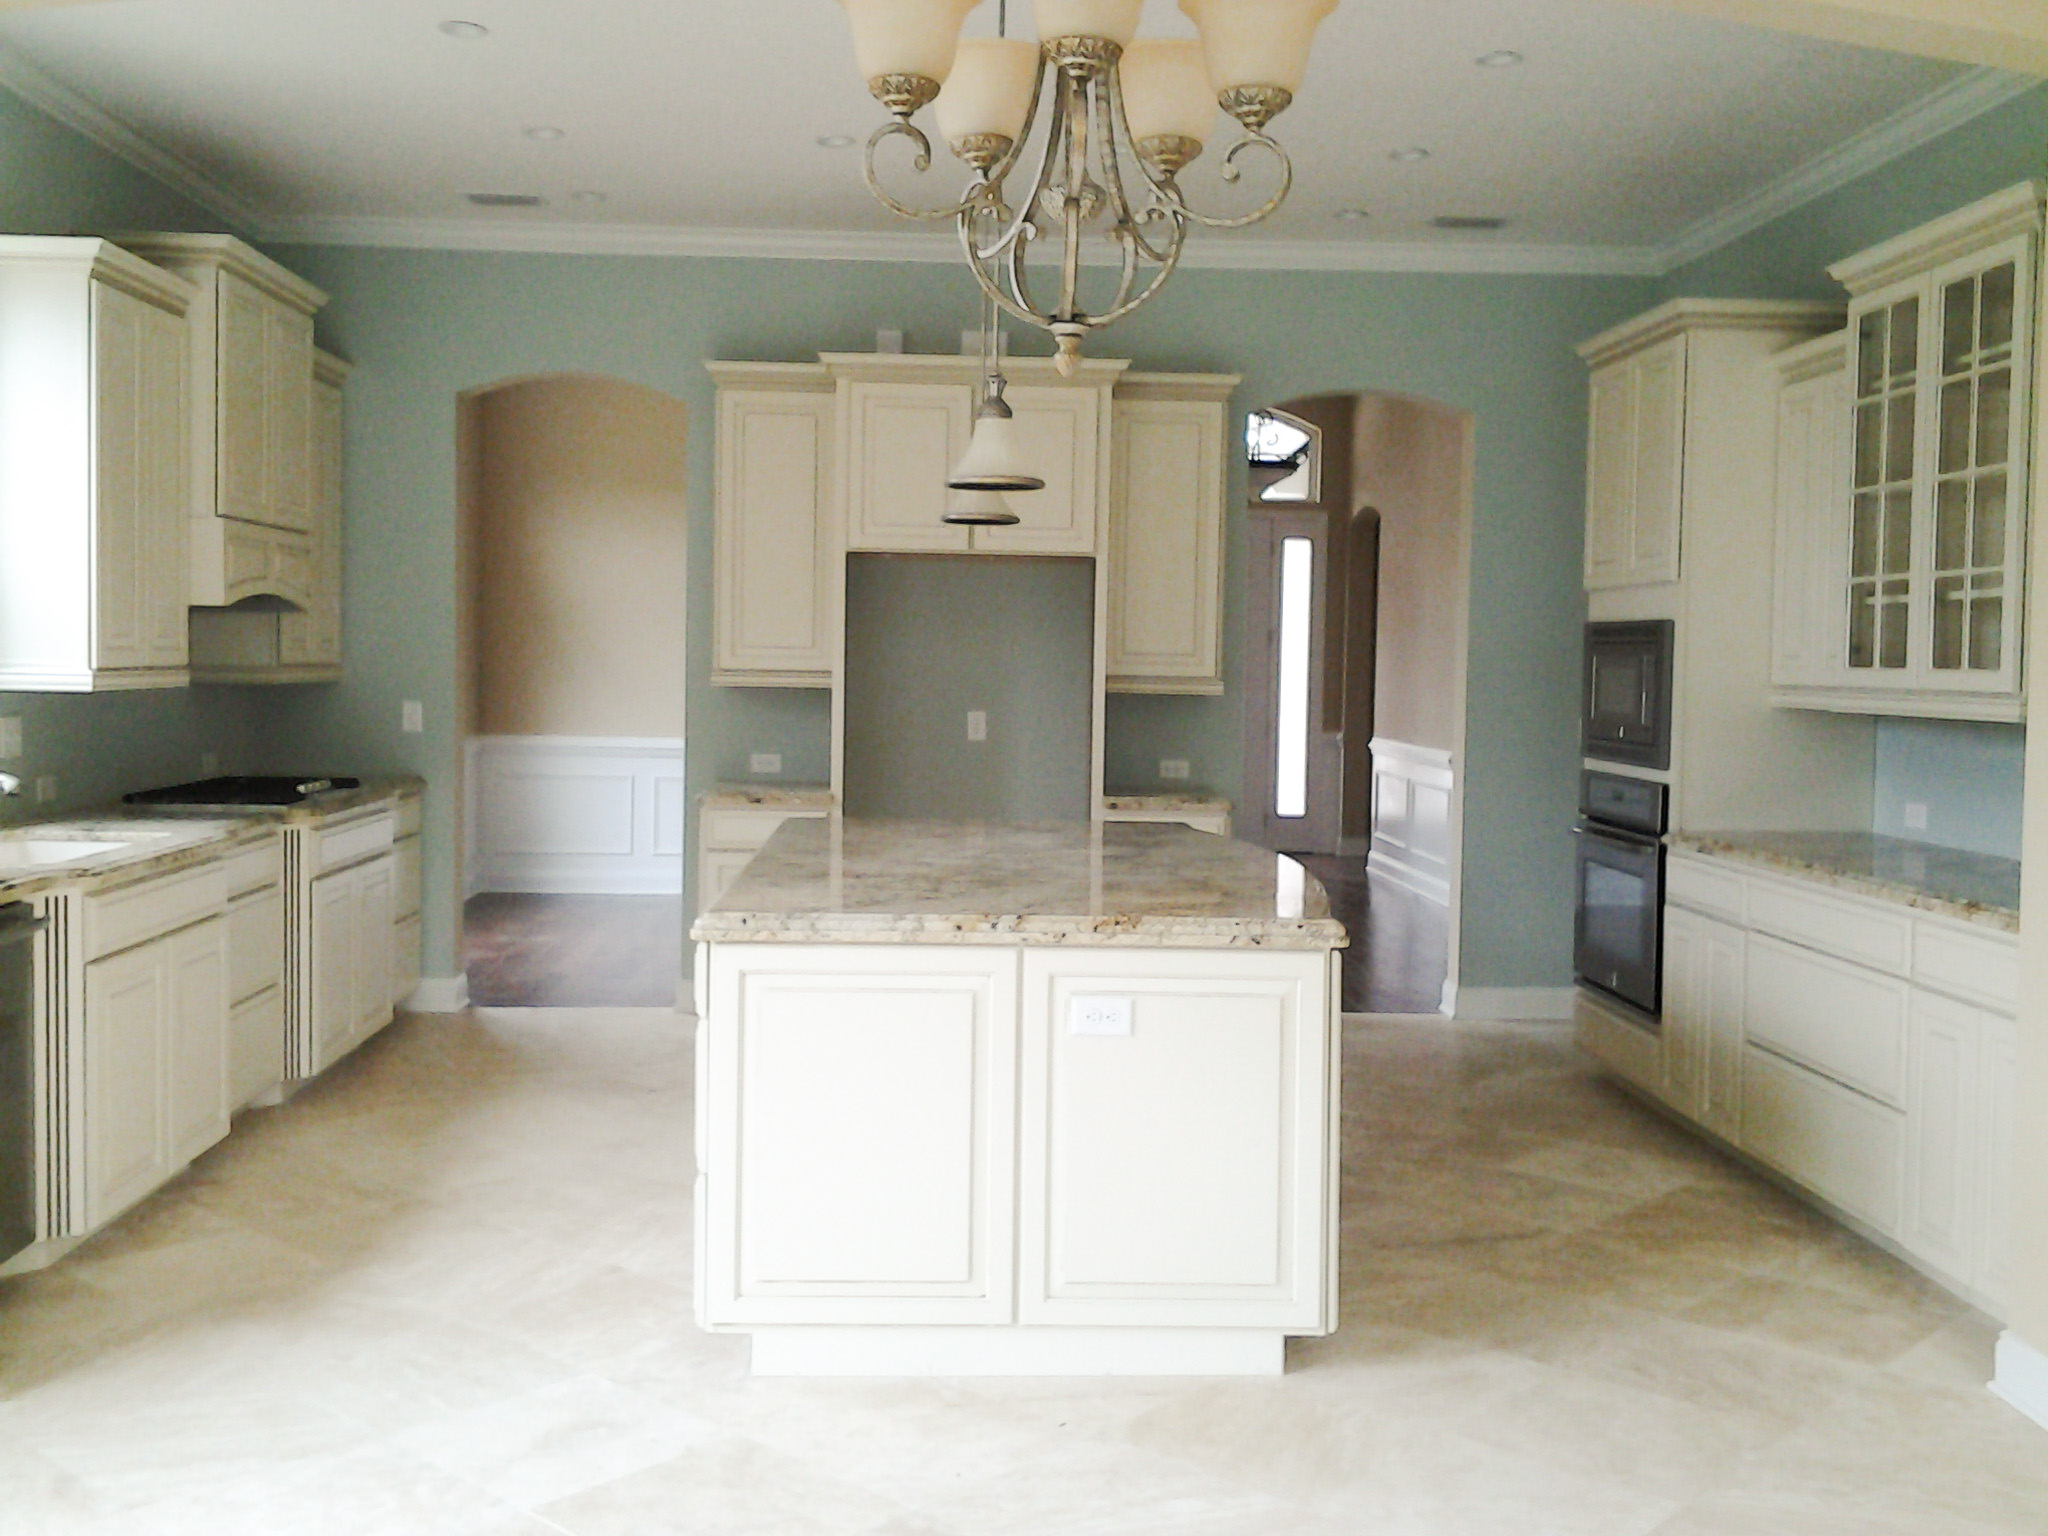 Kitchen cabinets contractors jacksonville florida for Kitchen cabinets jacksonville fl